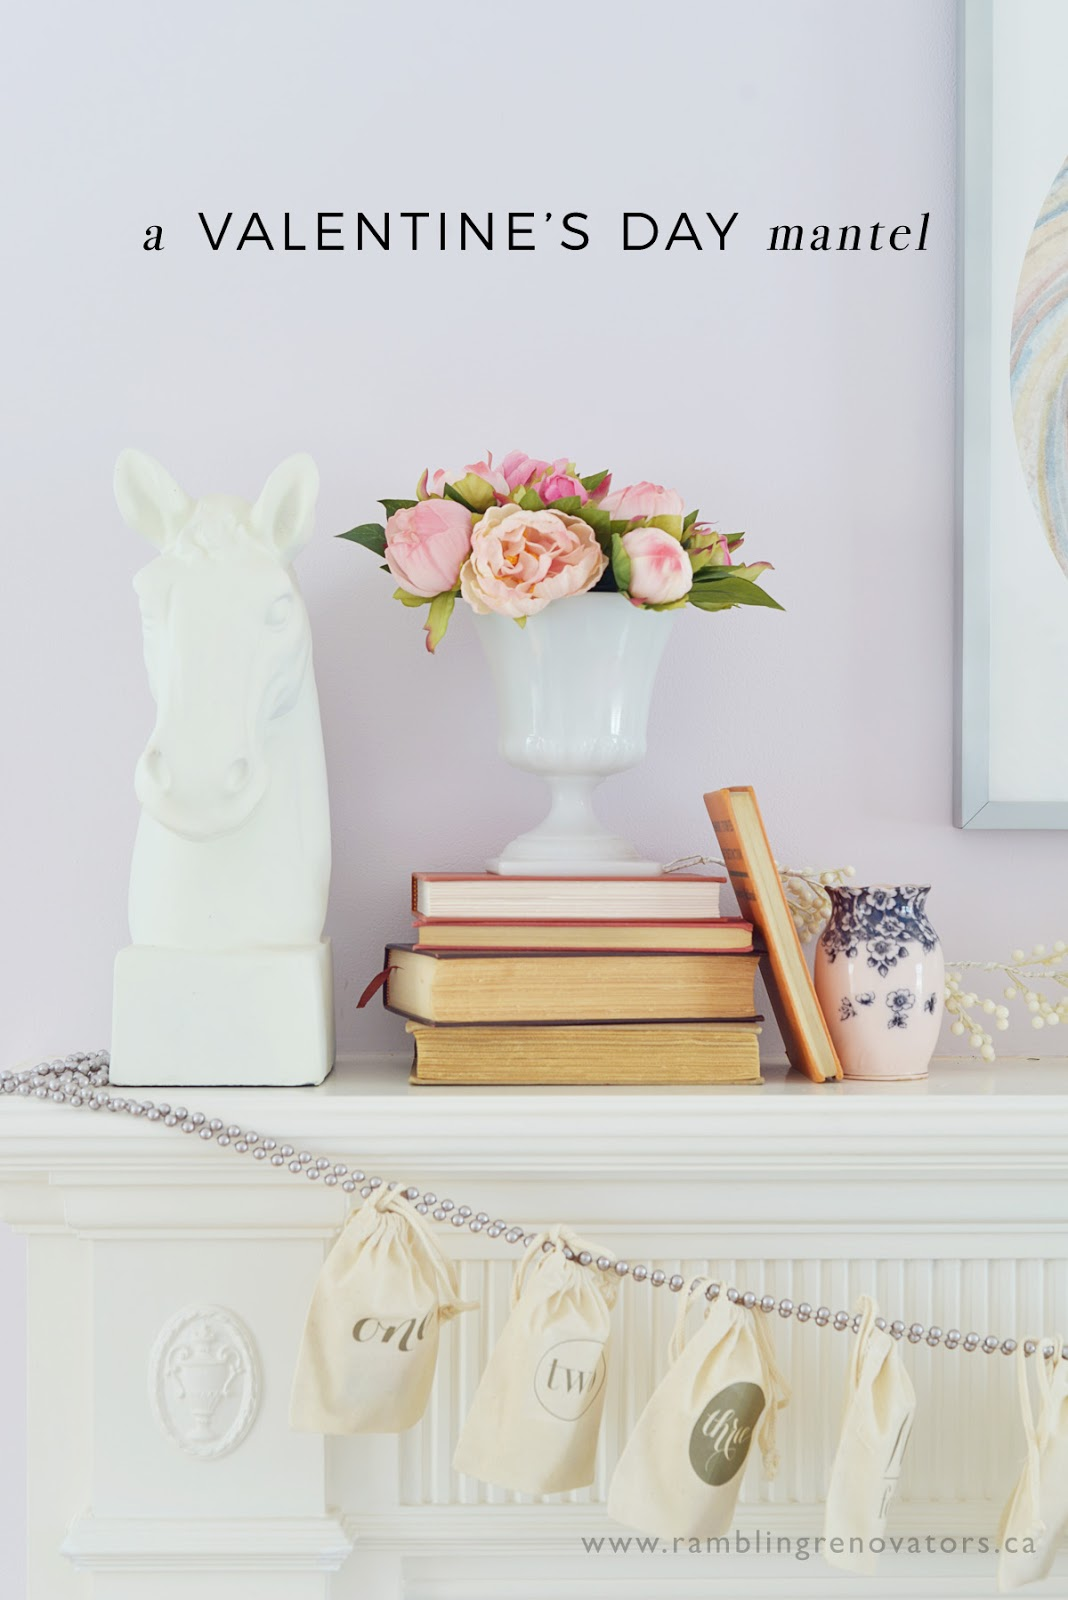 valentines day mantel, countdown calendar, milk glass flowers | Ramblingrenovators.ca